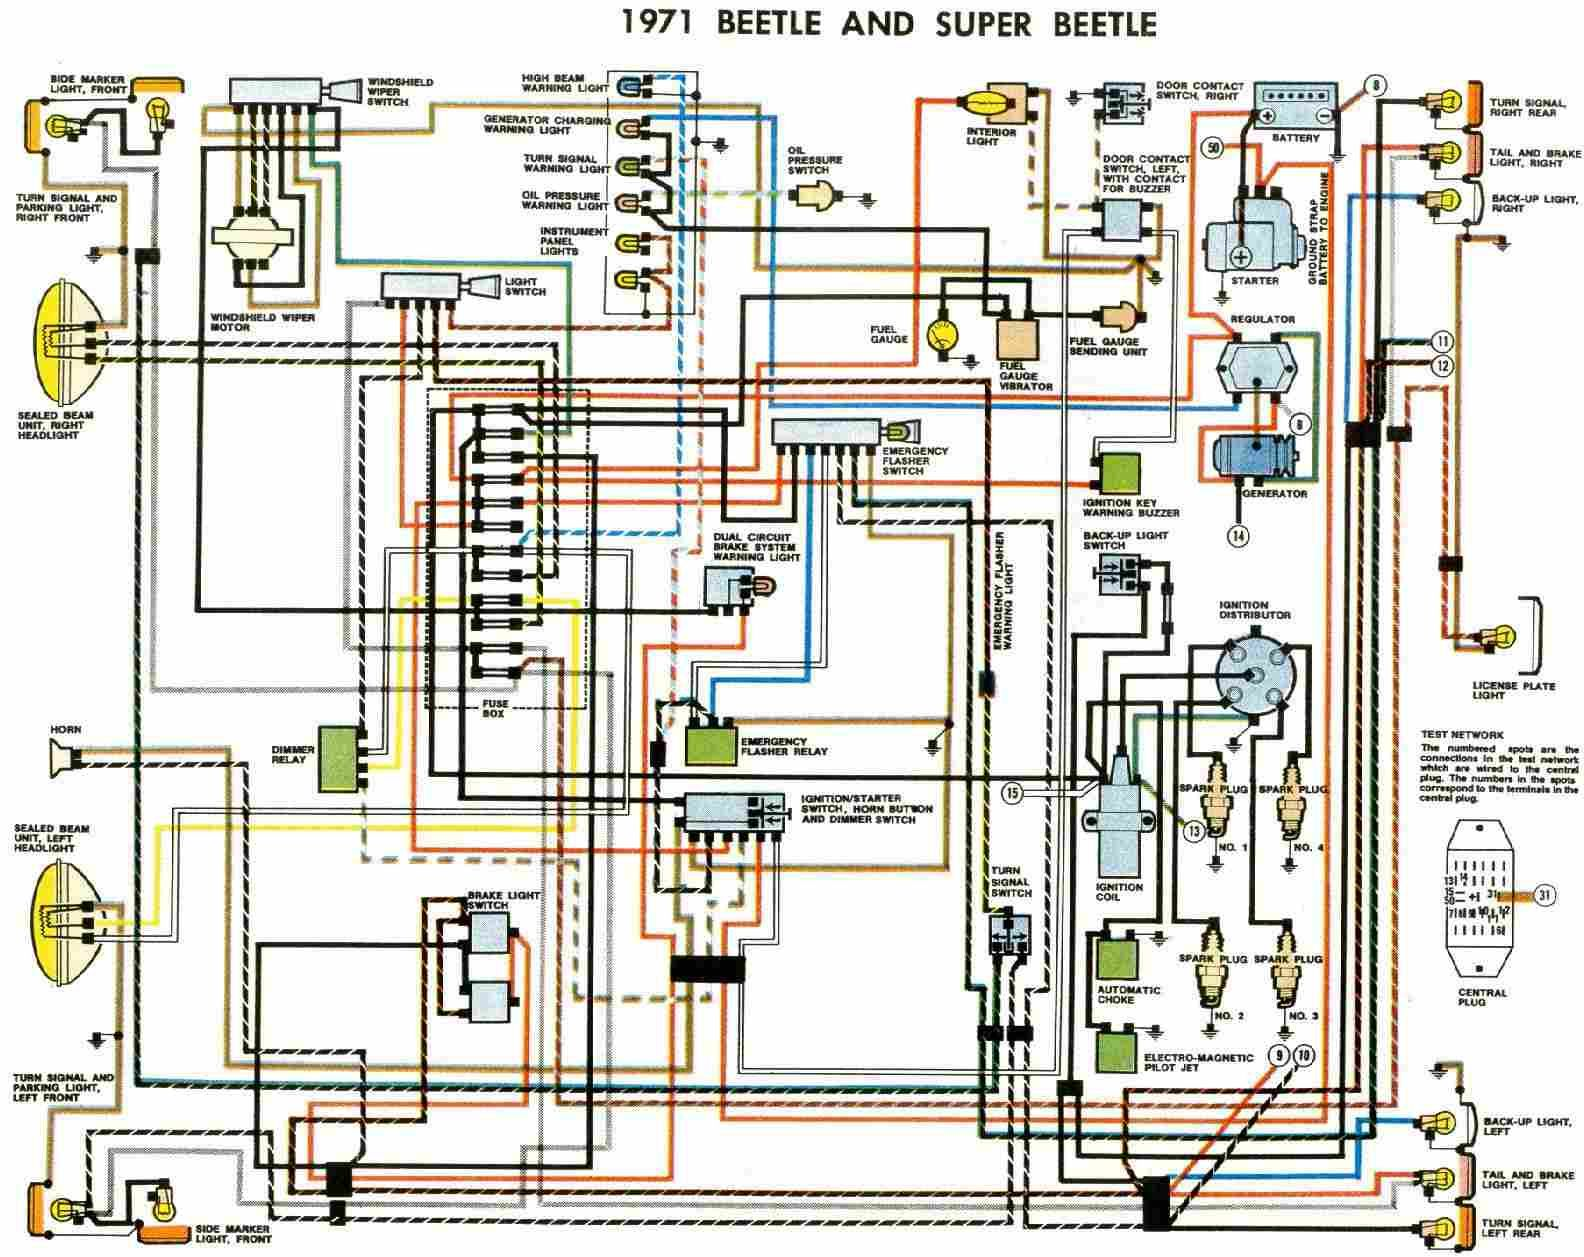 6379f2a777a0eb1b27fdba46670ceb6a free auto wiring diagram 1971 vw beetle and super beetle byocar 1971 vw bus wiring diagram at gsmportal.co